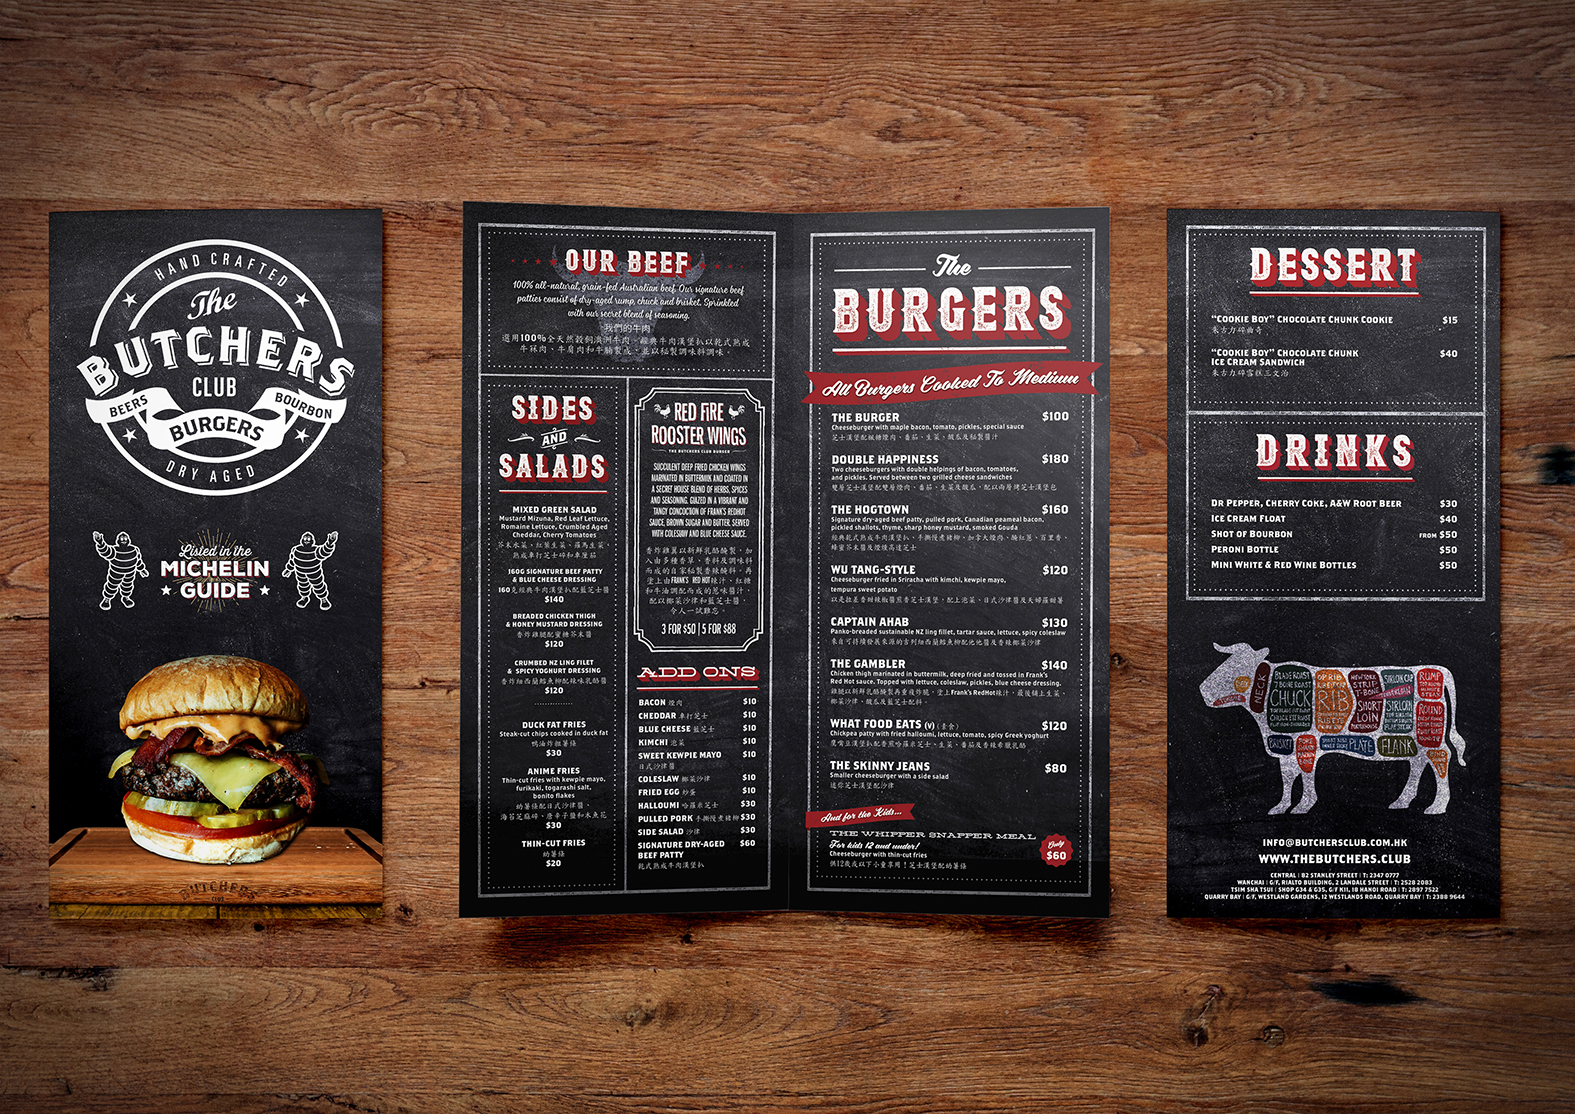 TBC-Photos-Menus.jpg